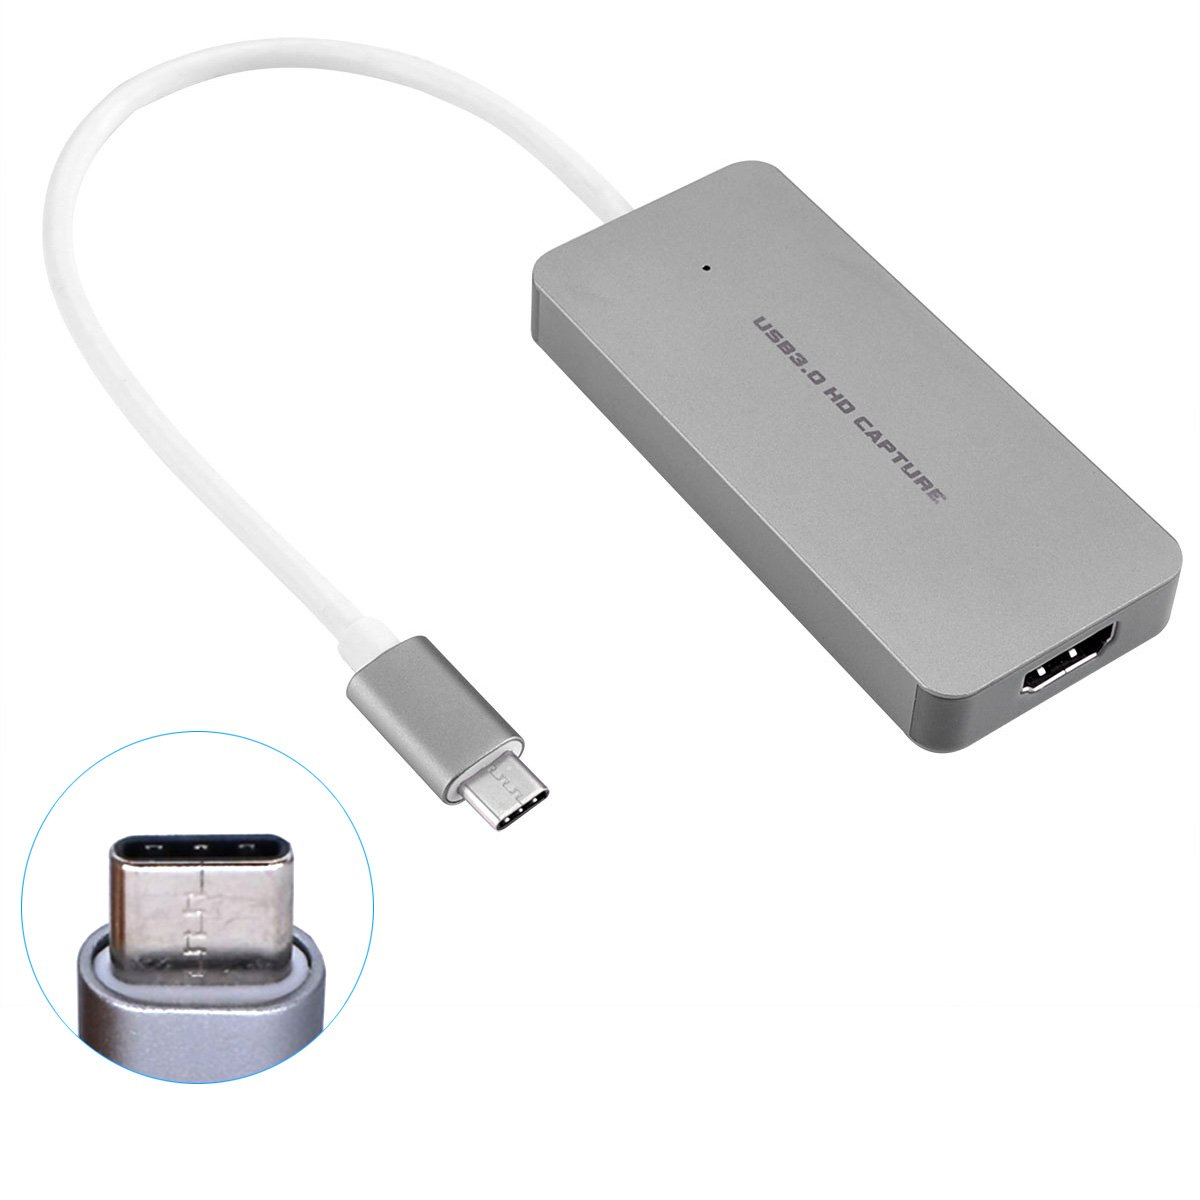 USB3.0 Type-C HD Game Video Capture Card HDMI 1080P 60FPS Recorder Device